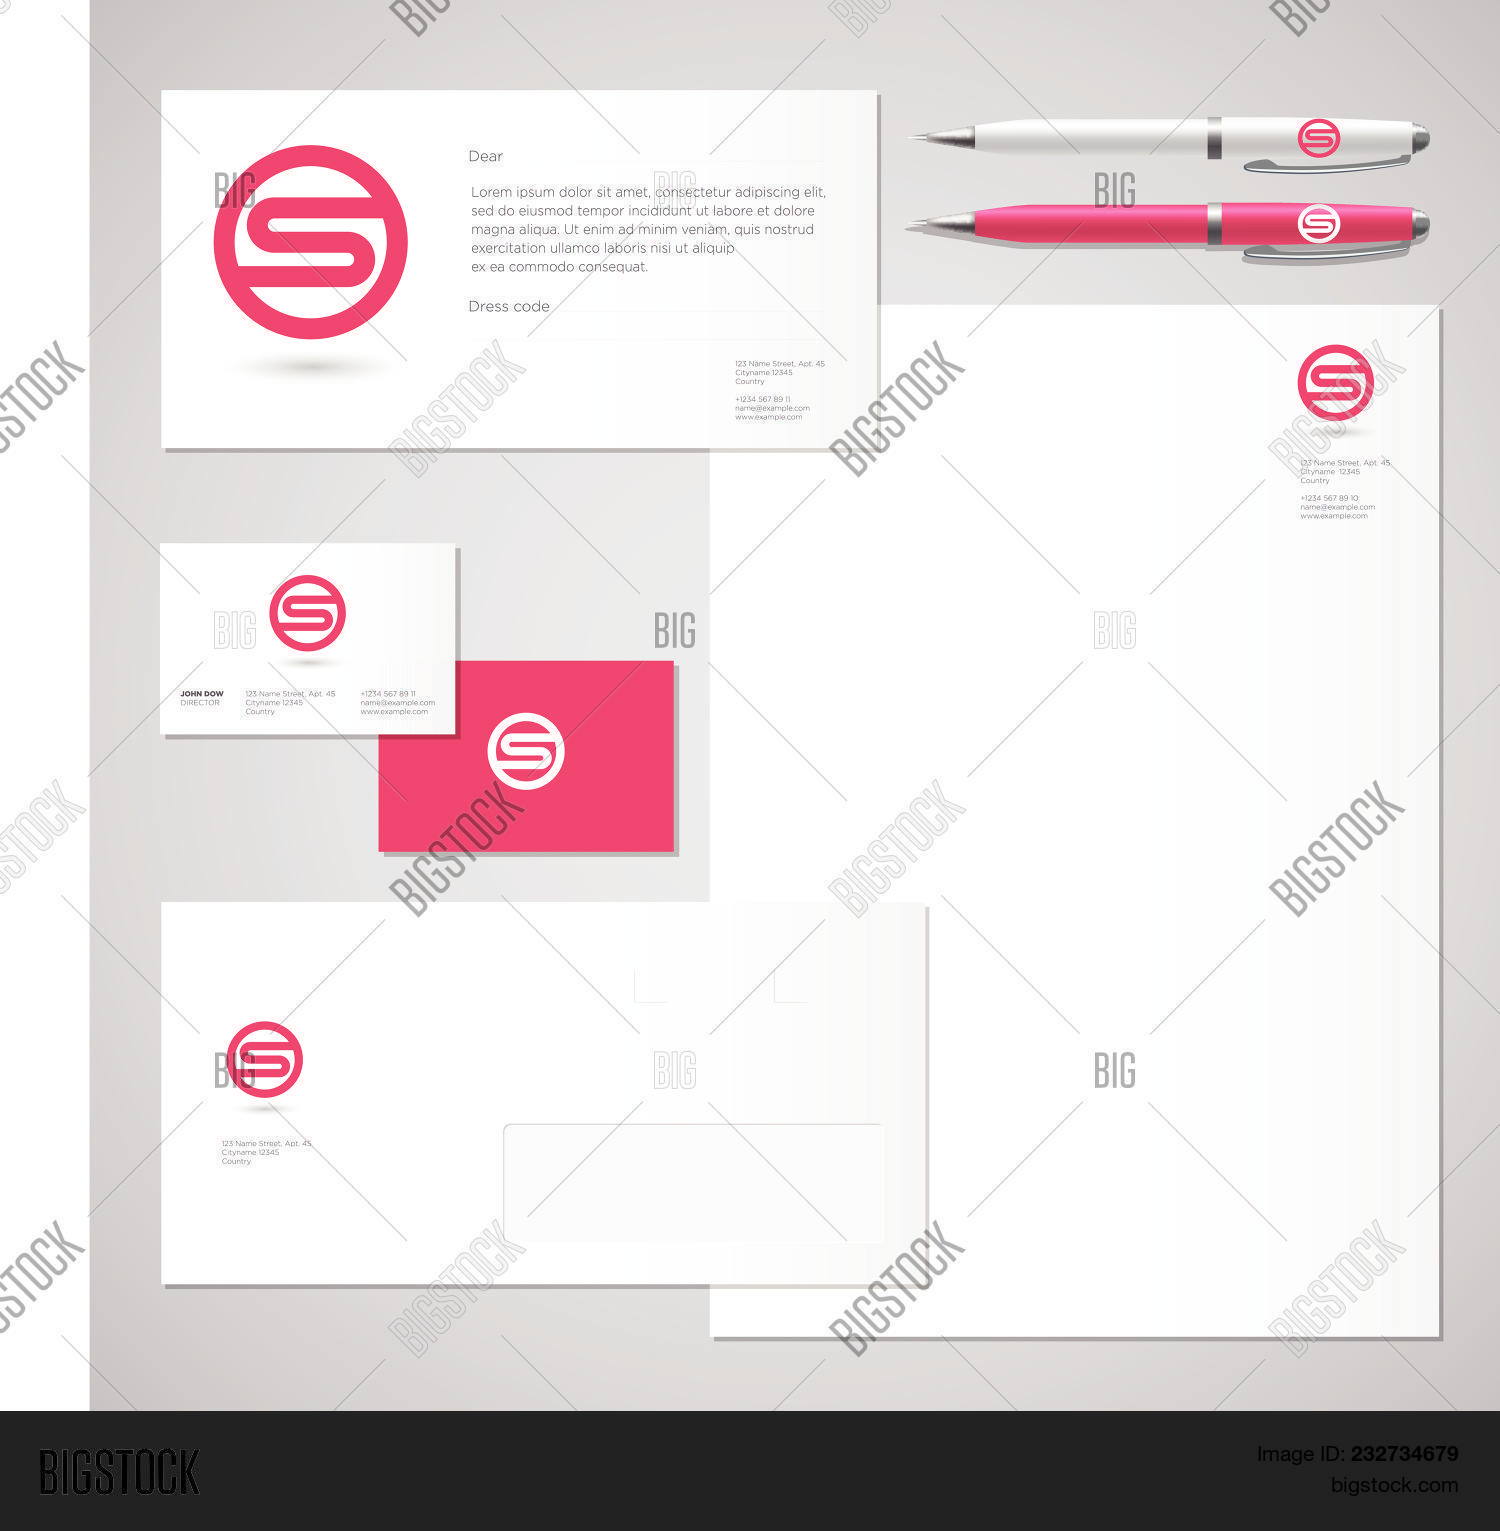 S Logo. S Red Letter Vector & Photo (Free Trial) | Bigstock